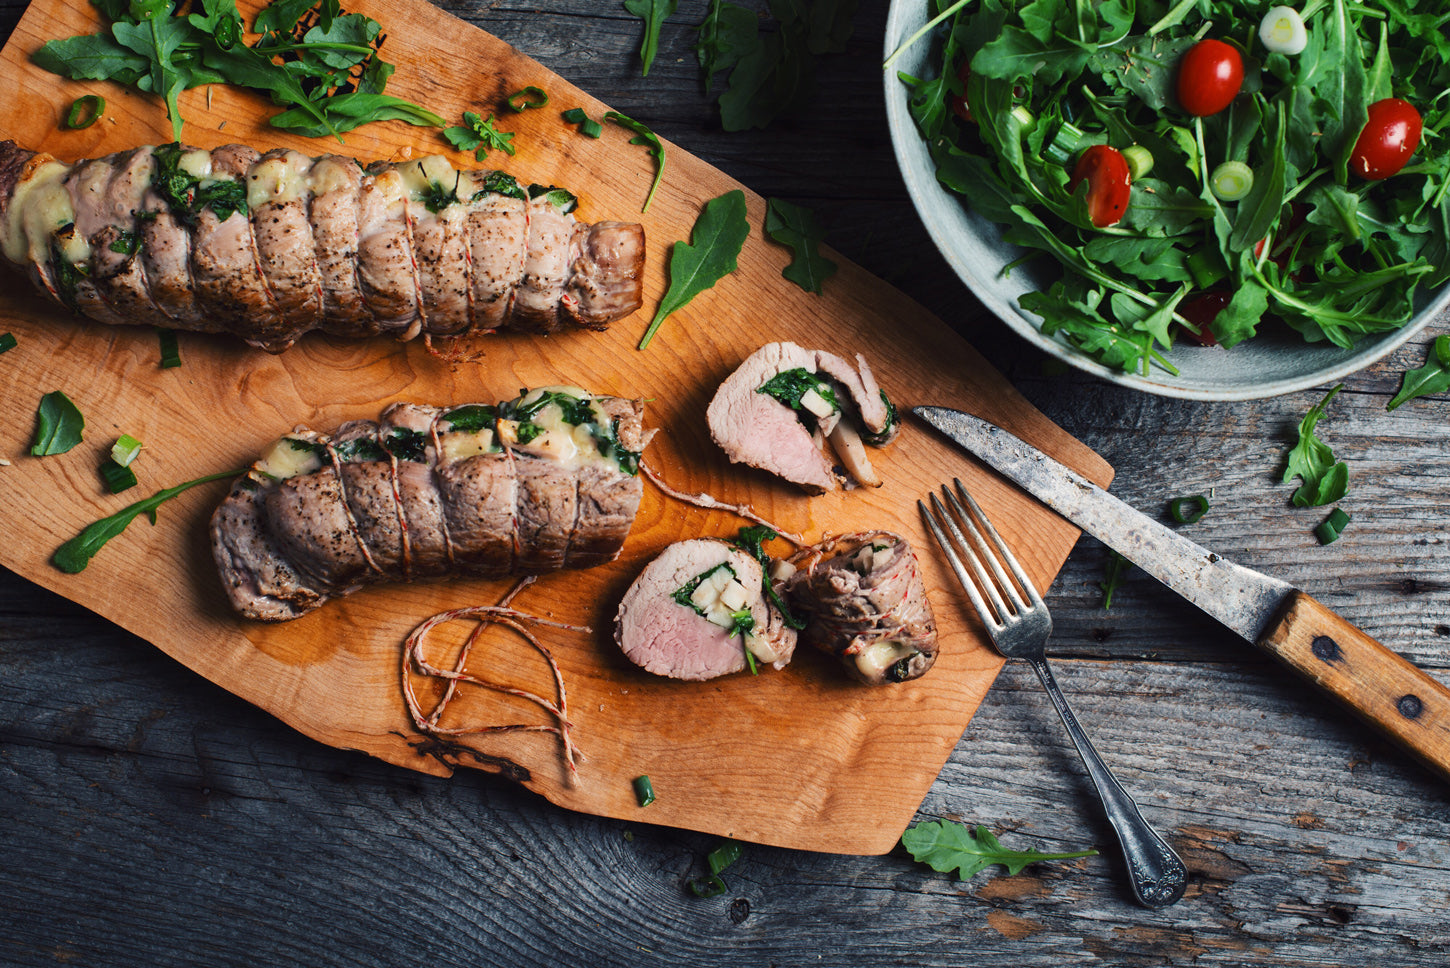 Pork Loins with Apple, Cheddar and Arugula Stuffing